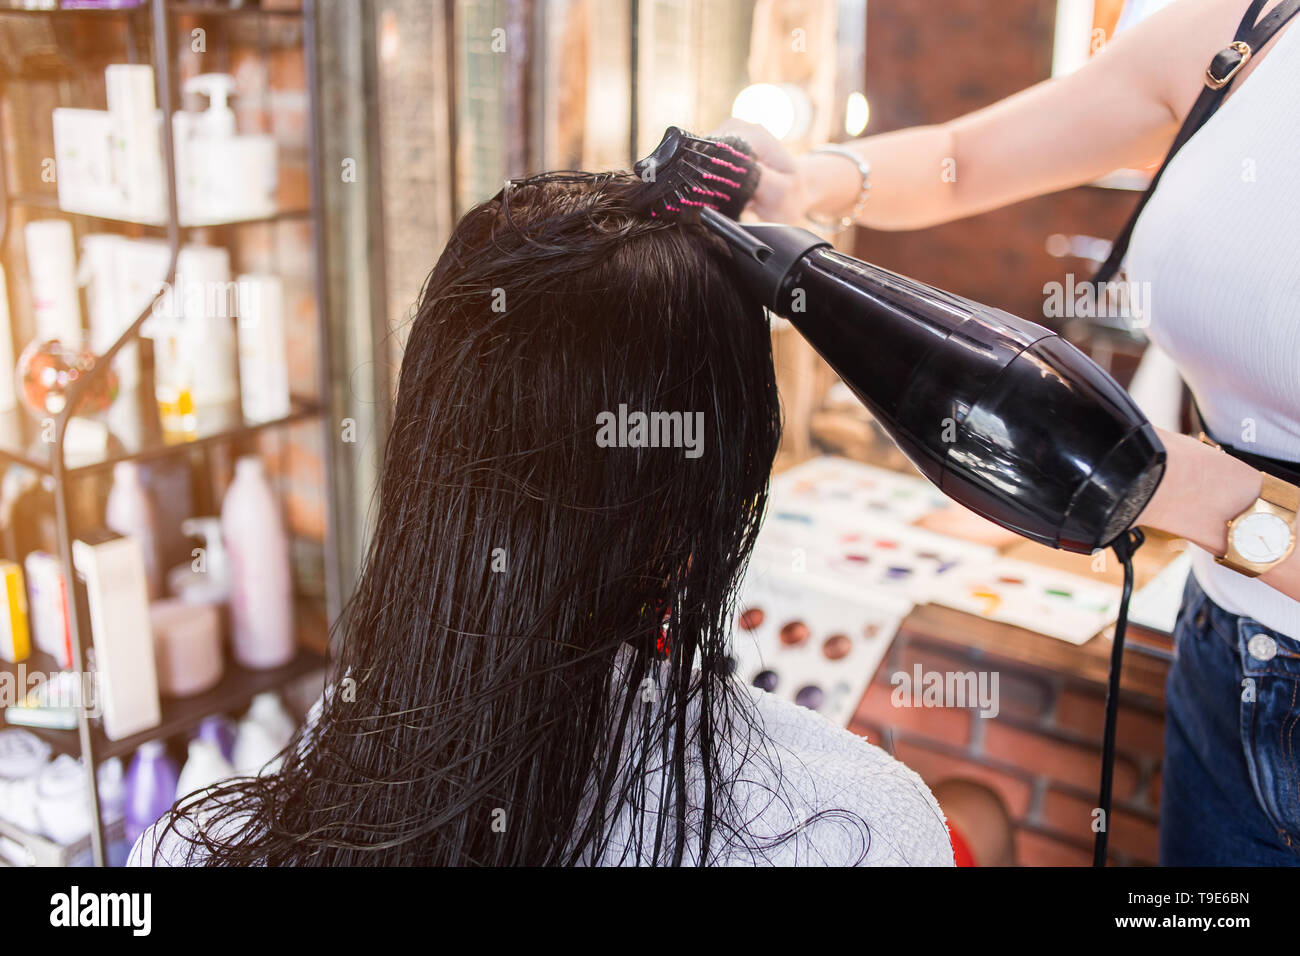 Beautiful brunette young woman at the hairdresser salon. Hairdresser making hairstyle. - Stock Image